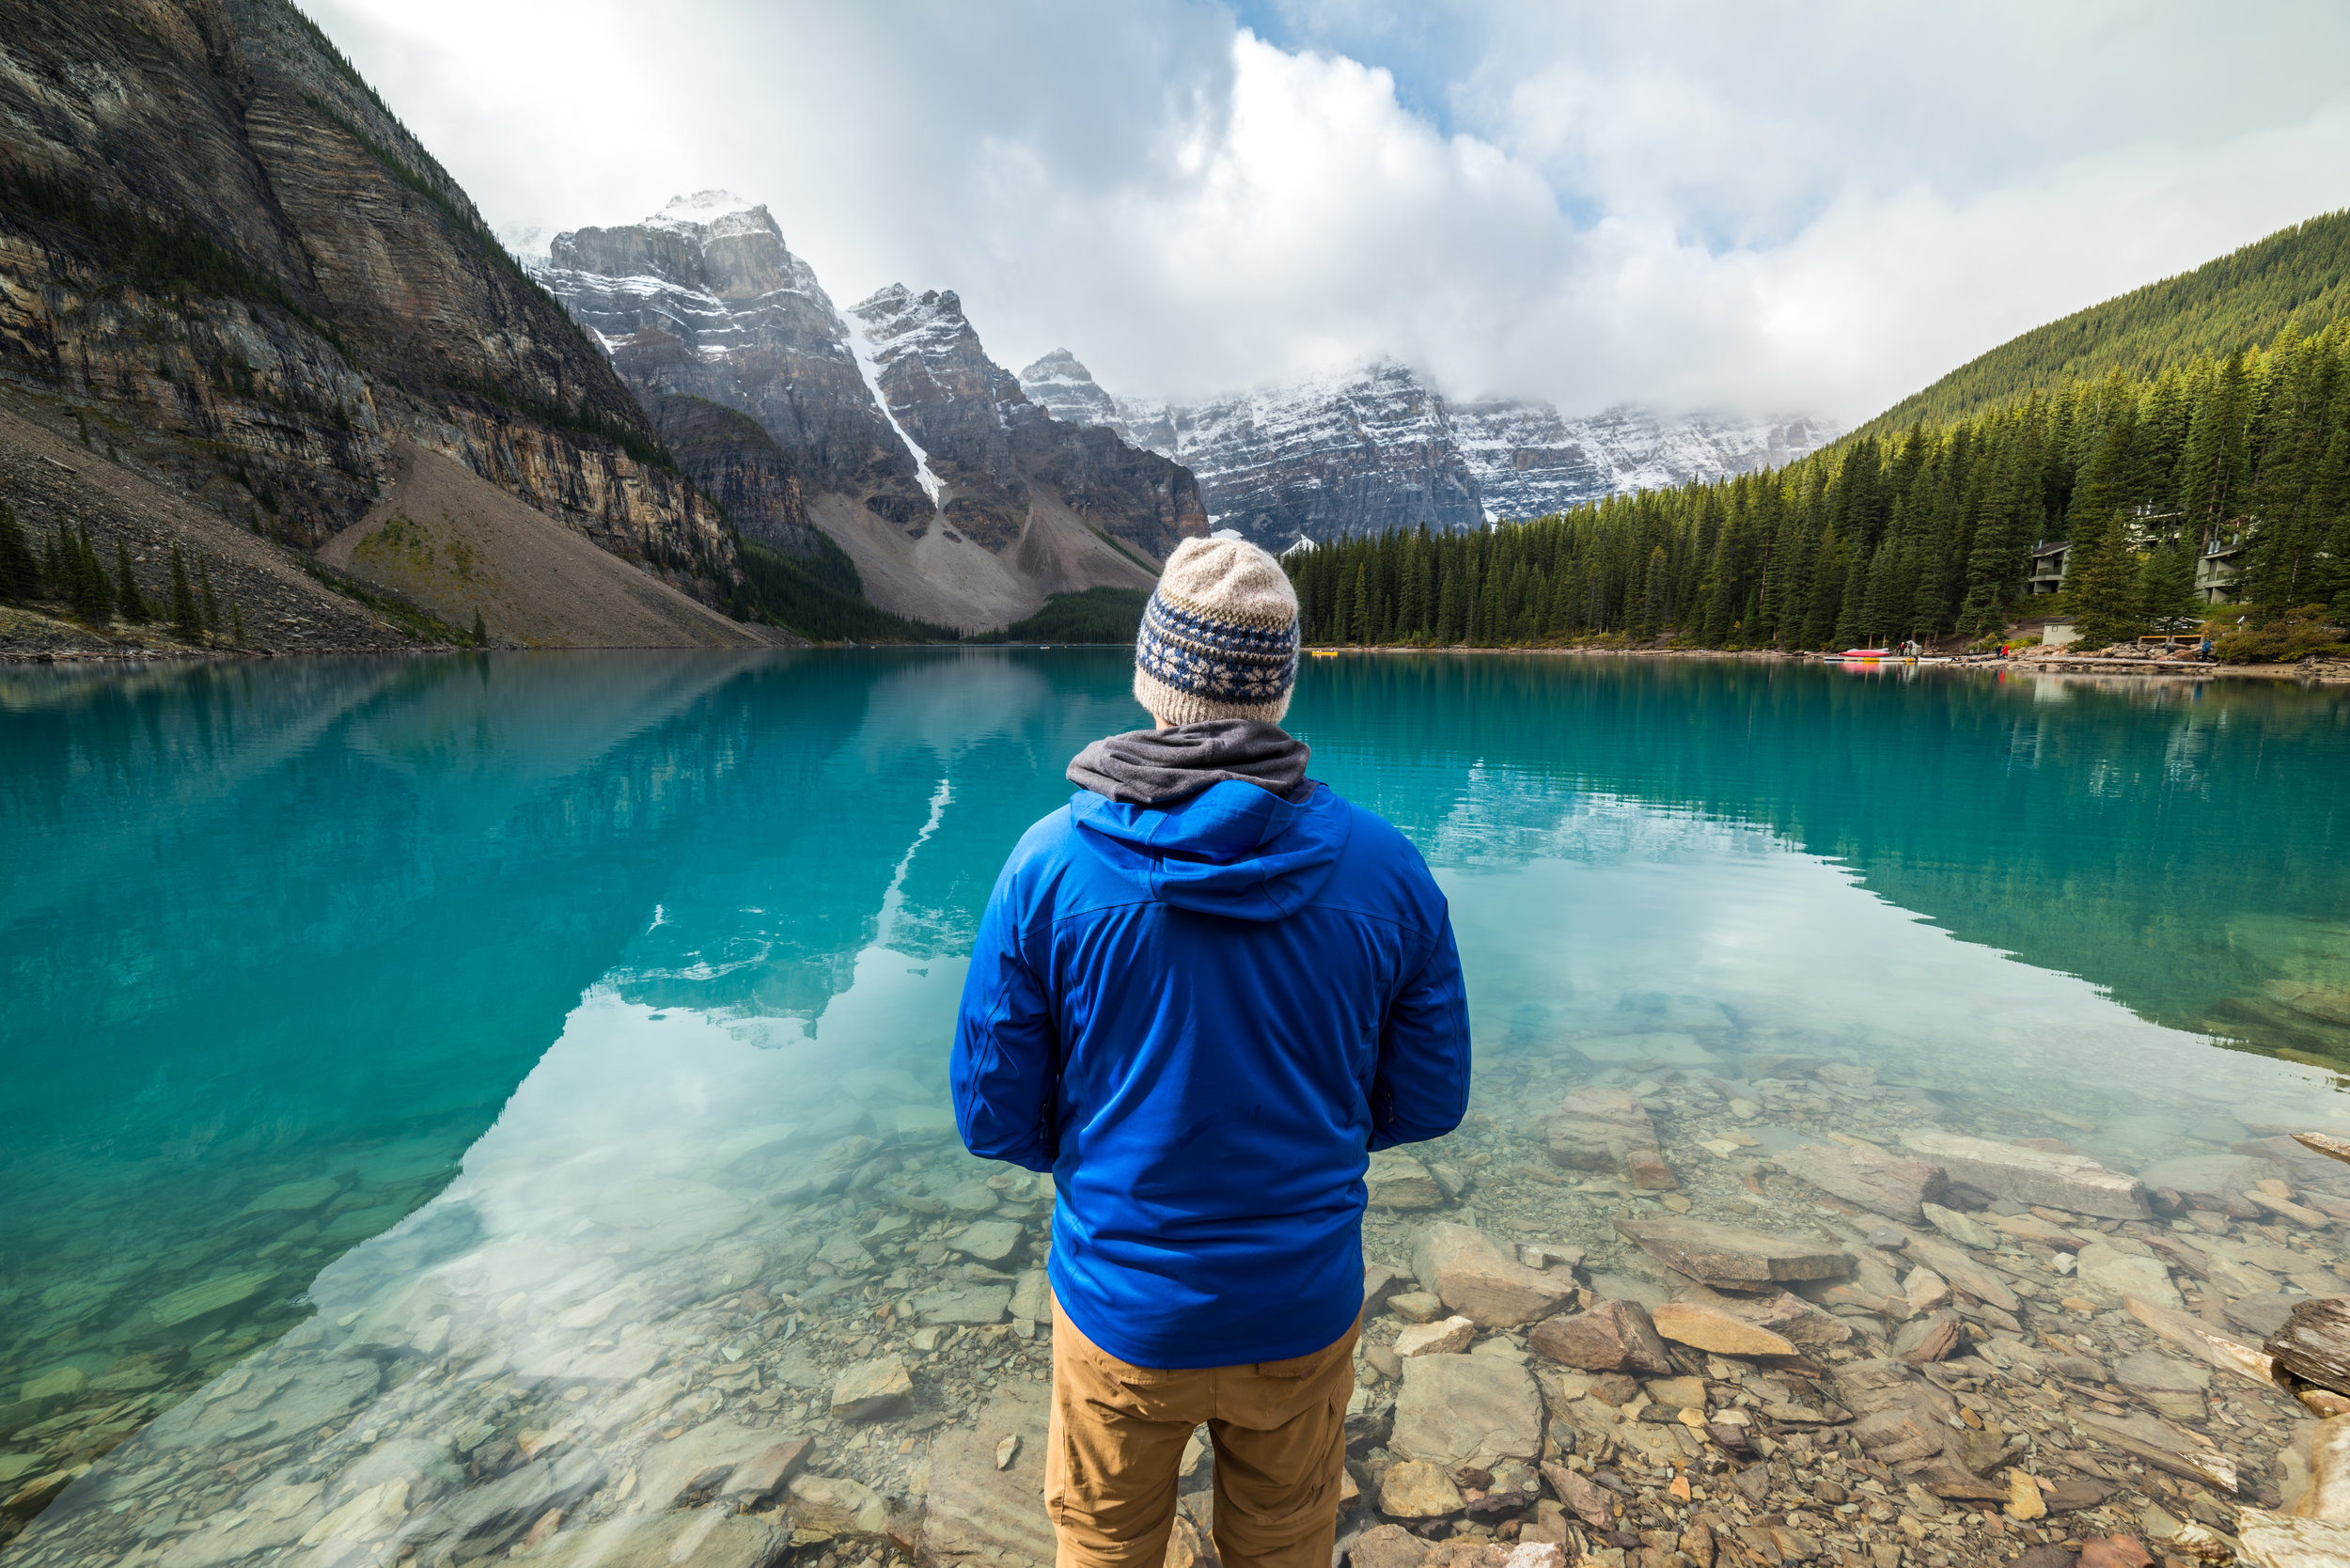 Standing at Moraine Lake, Banff National Park, AB.